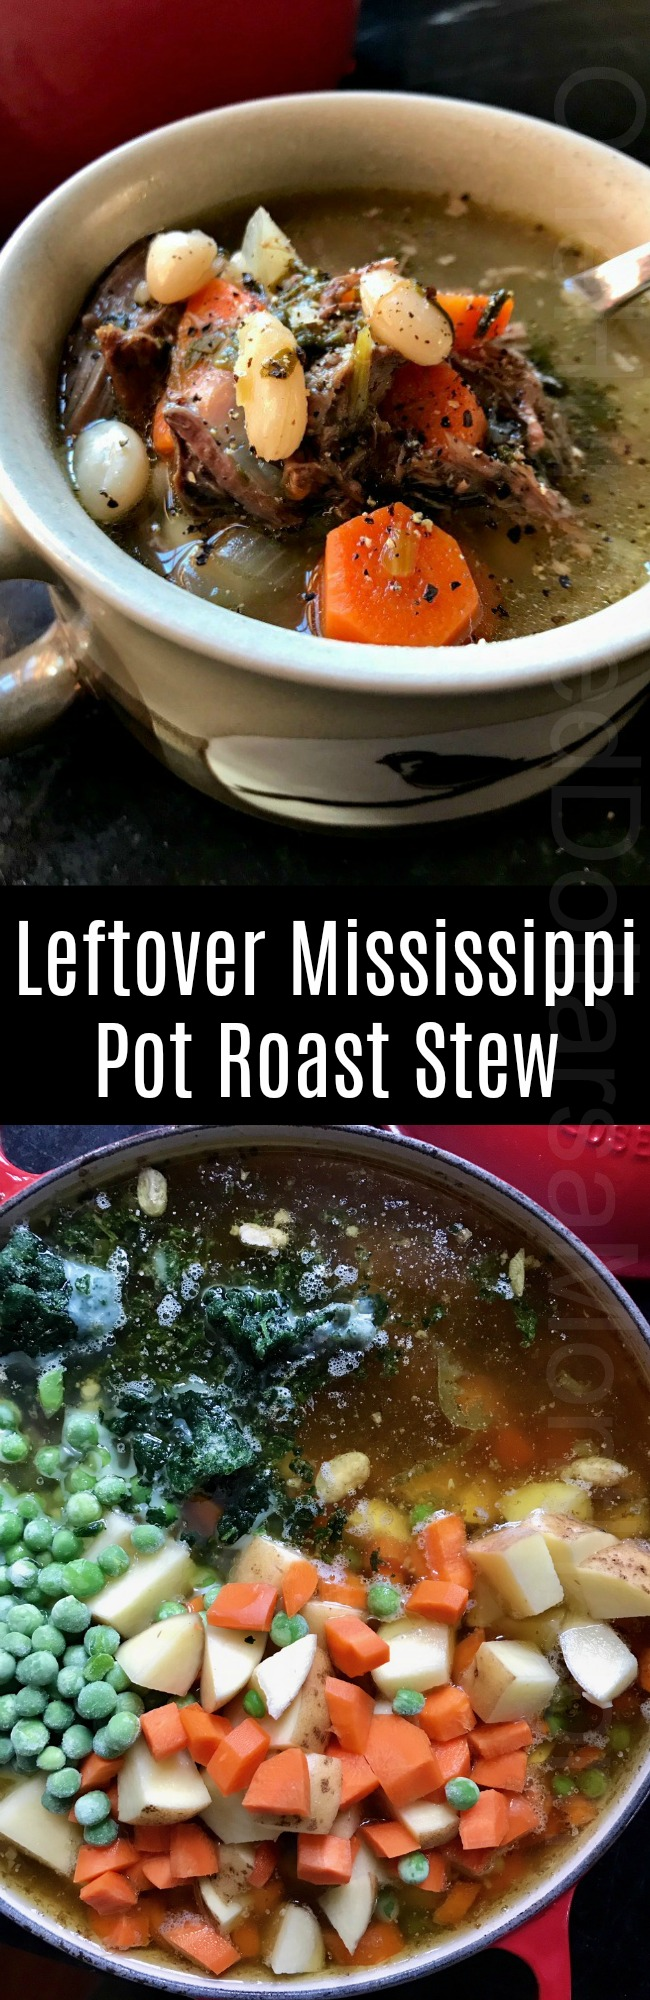 Leftover Mississippi Pot Roast Stew